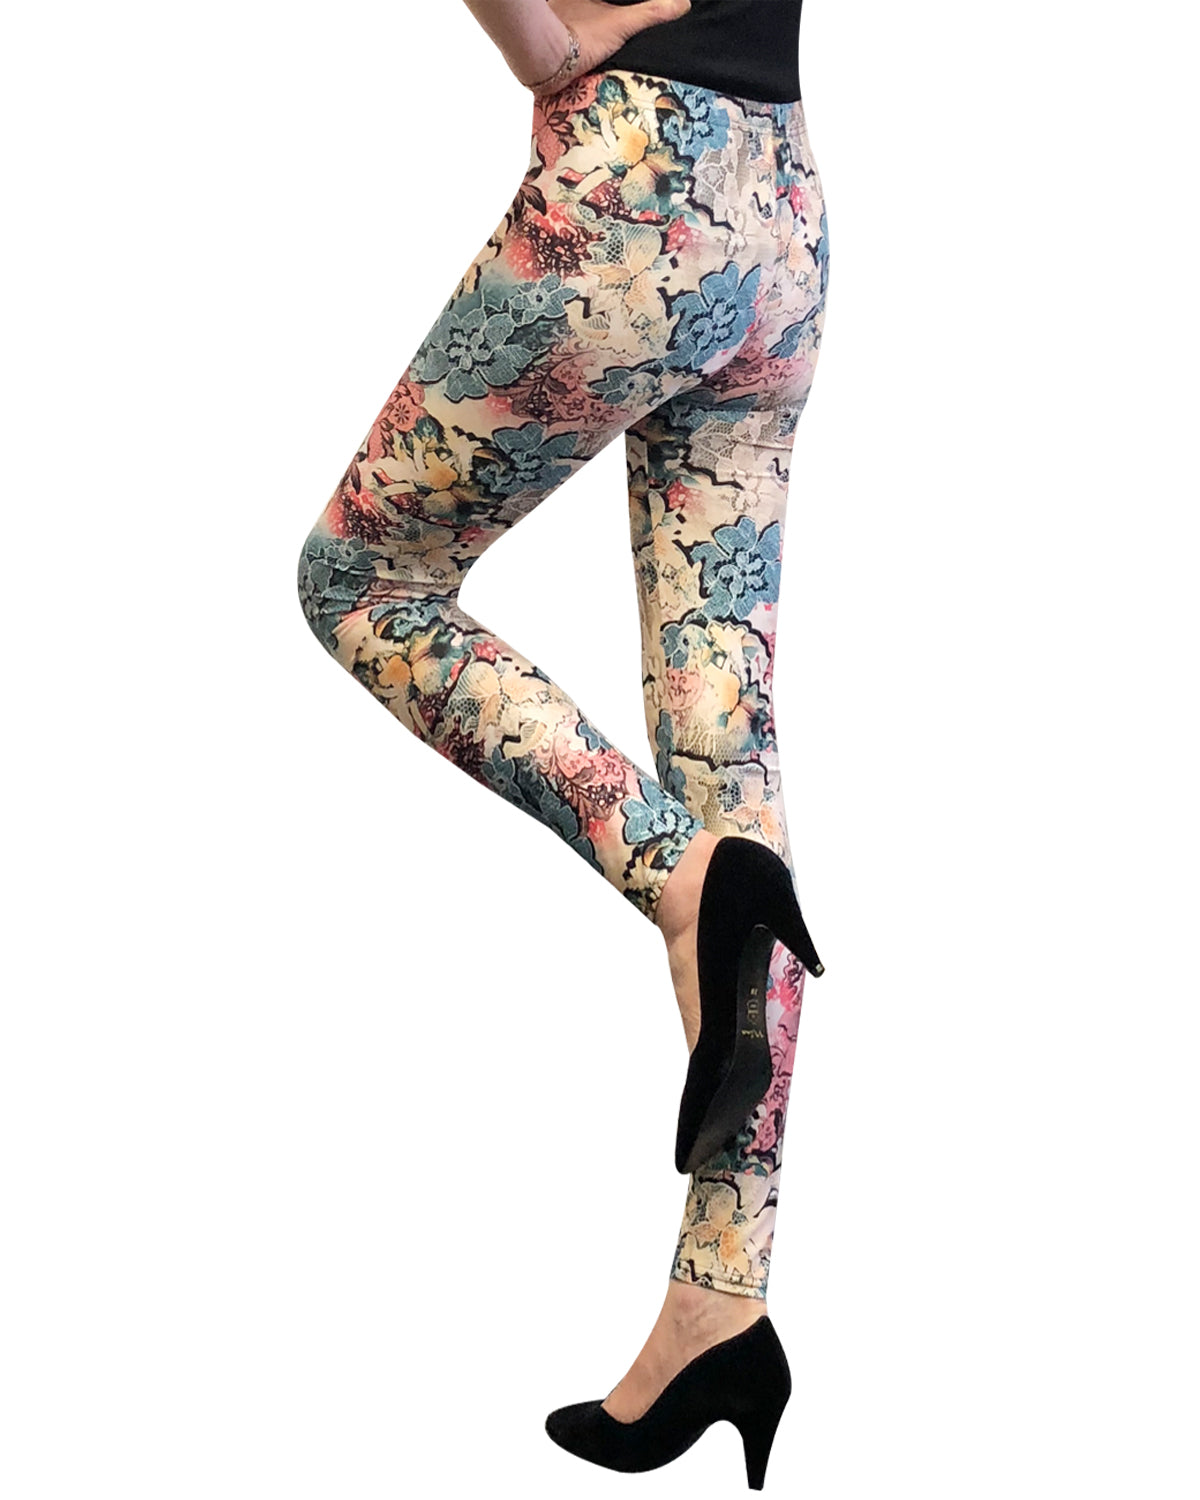 Wrapables Women/'s Ultra-Soft and Stretchy Printed Leggings for Activewear and Workout